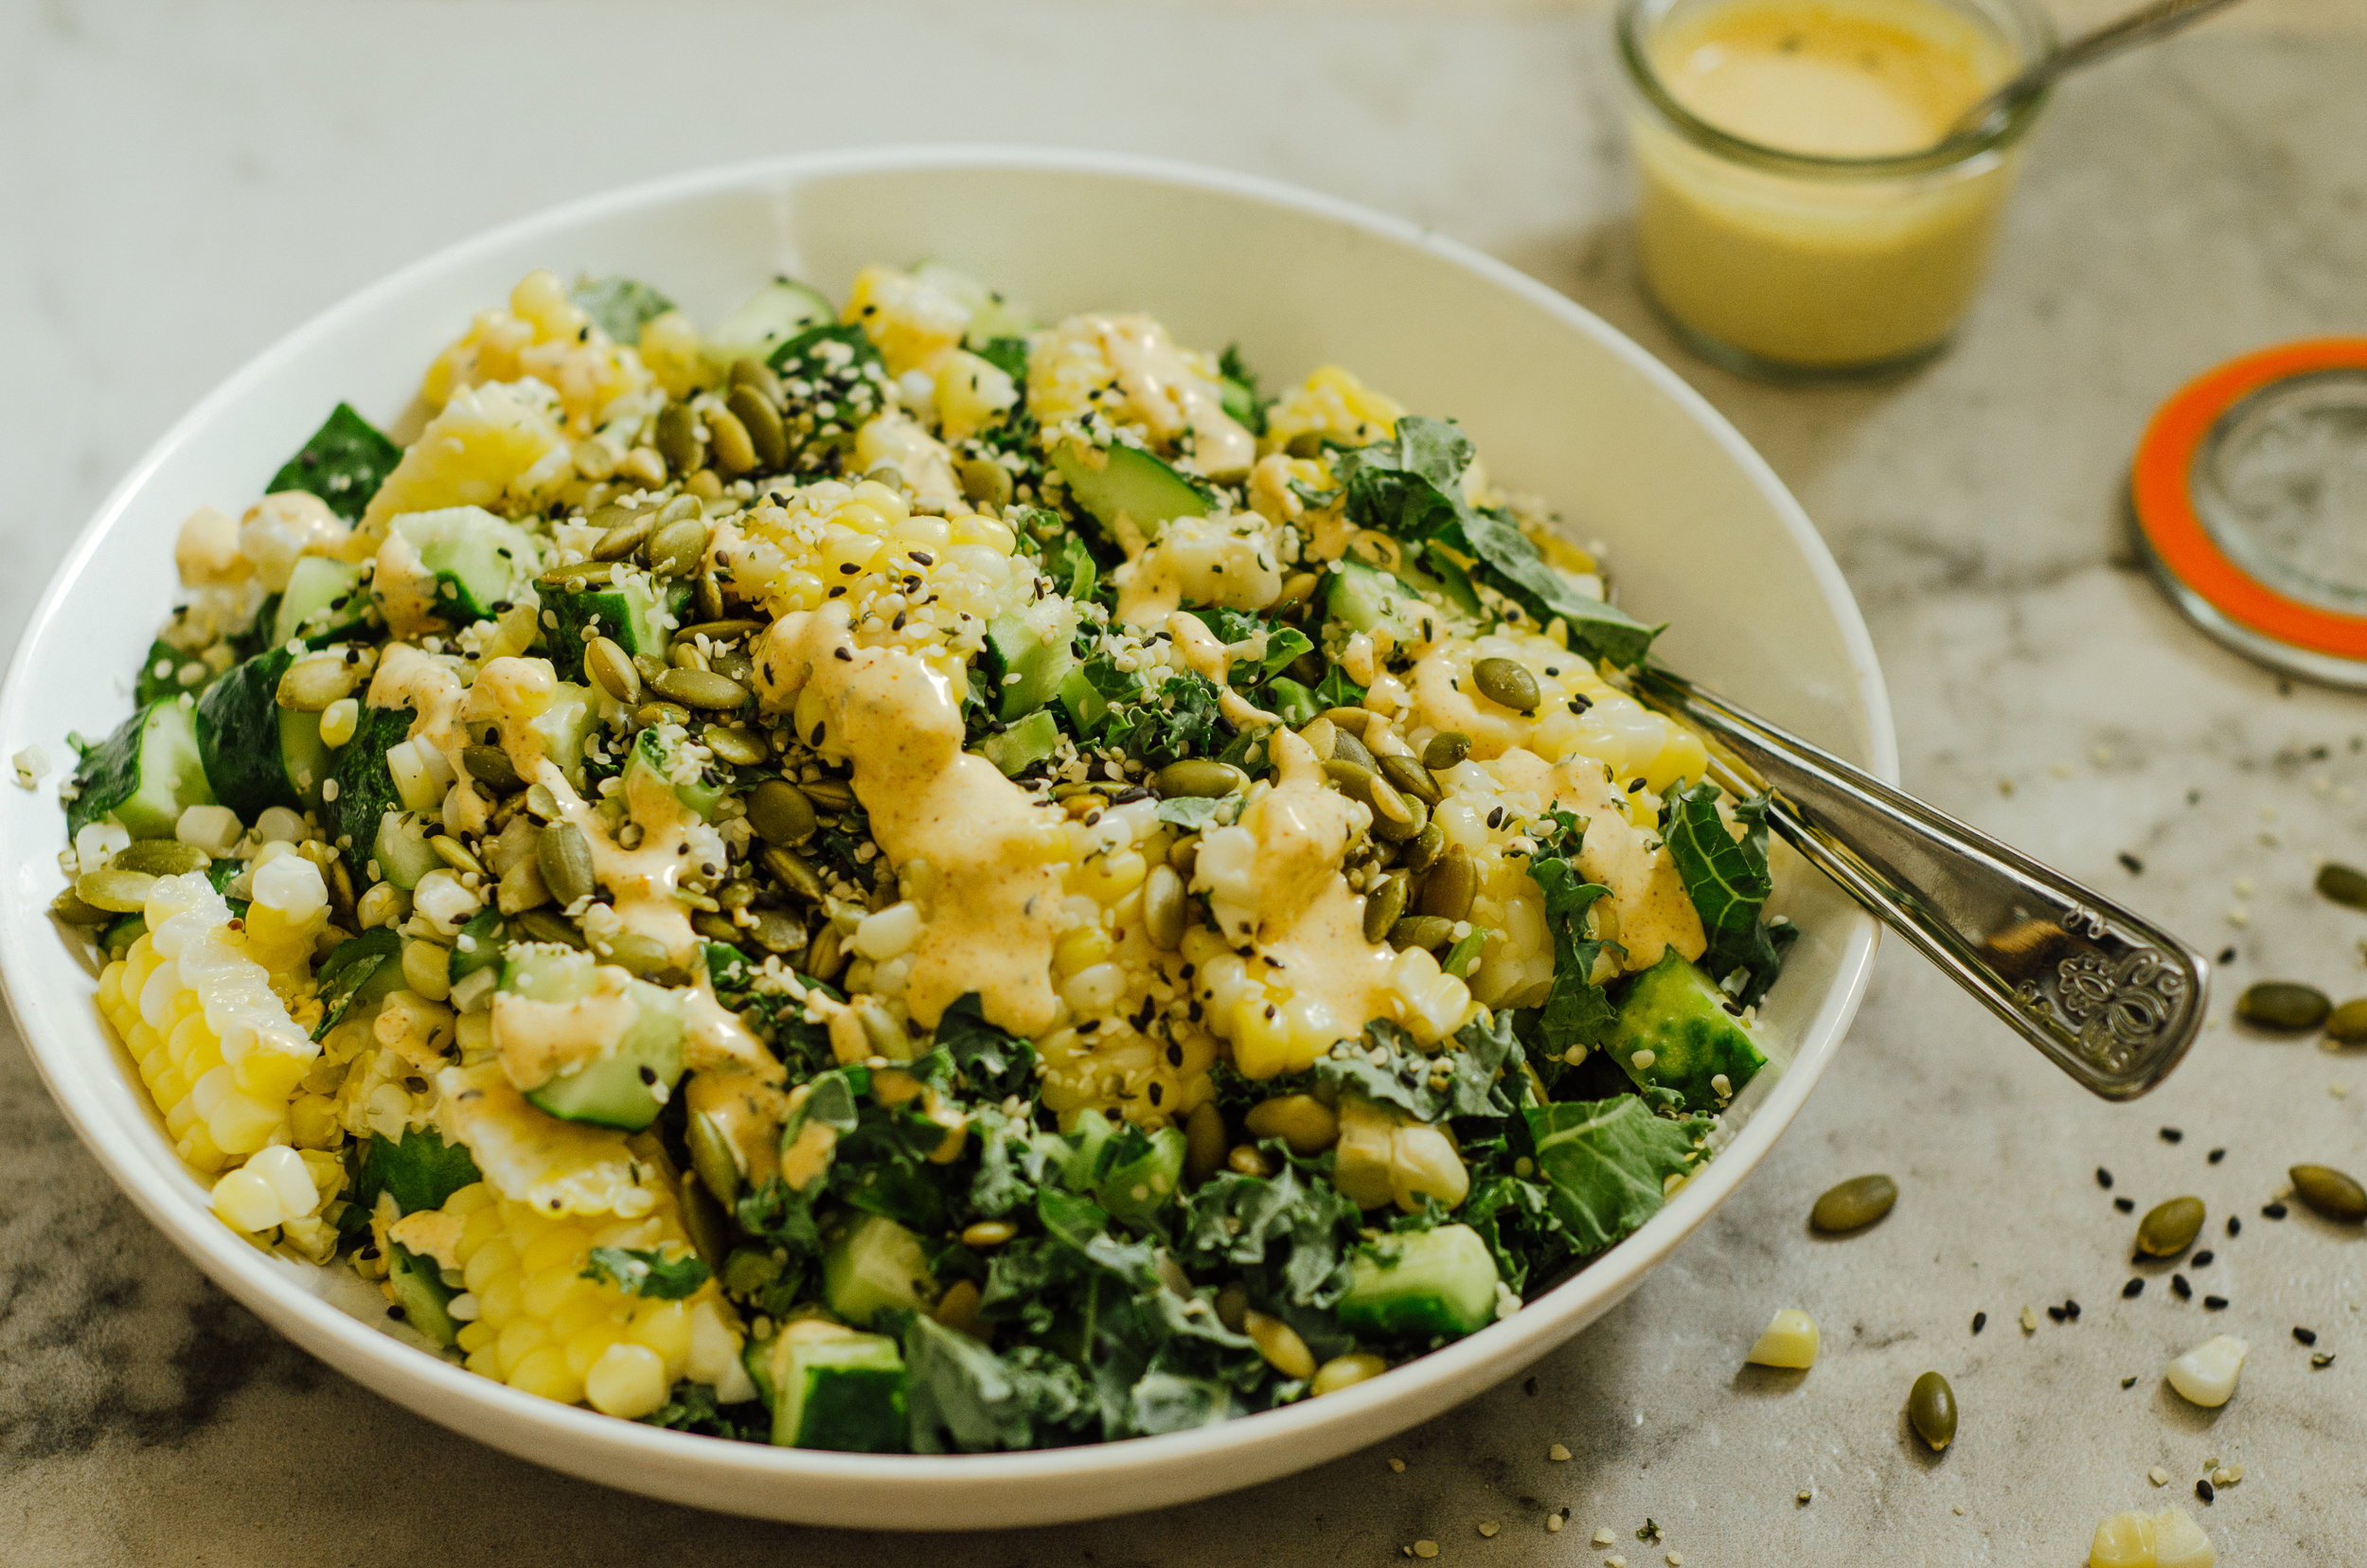 Corn, Kale & Cuke Salad with Chili Lime Sauce - The Nomadic Wife-7662.jpg